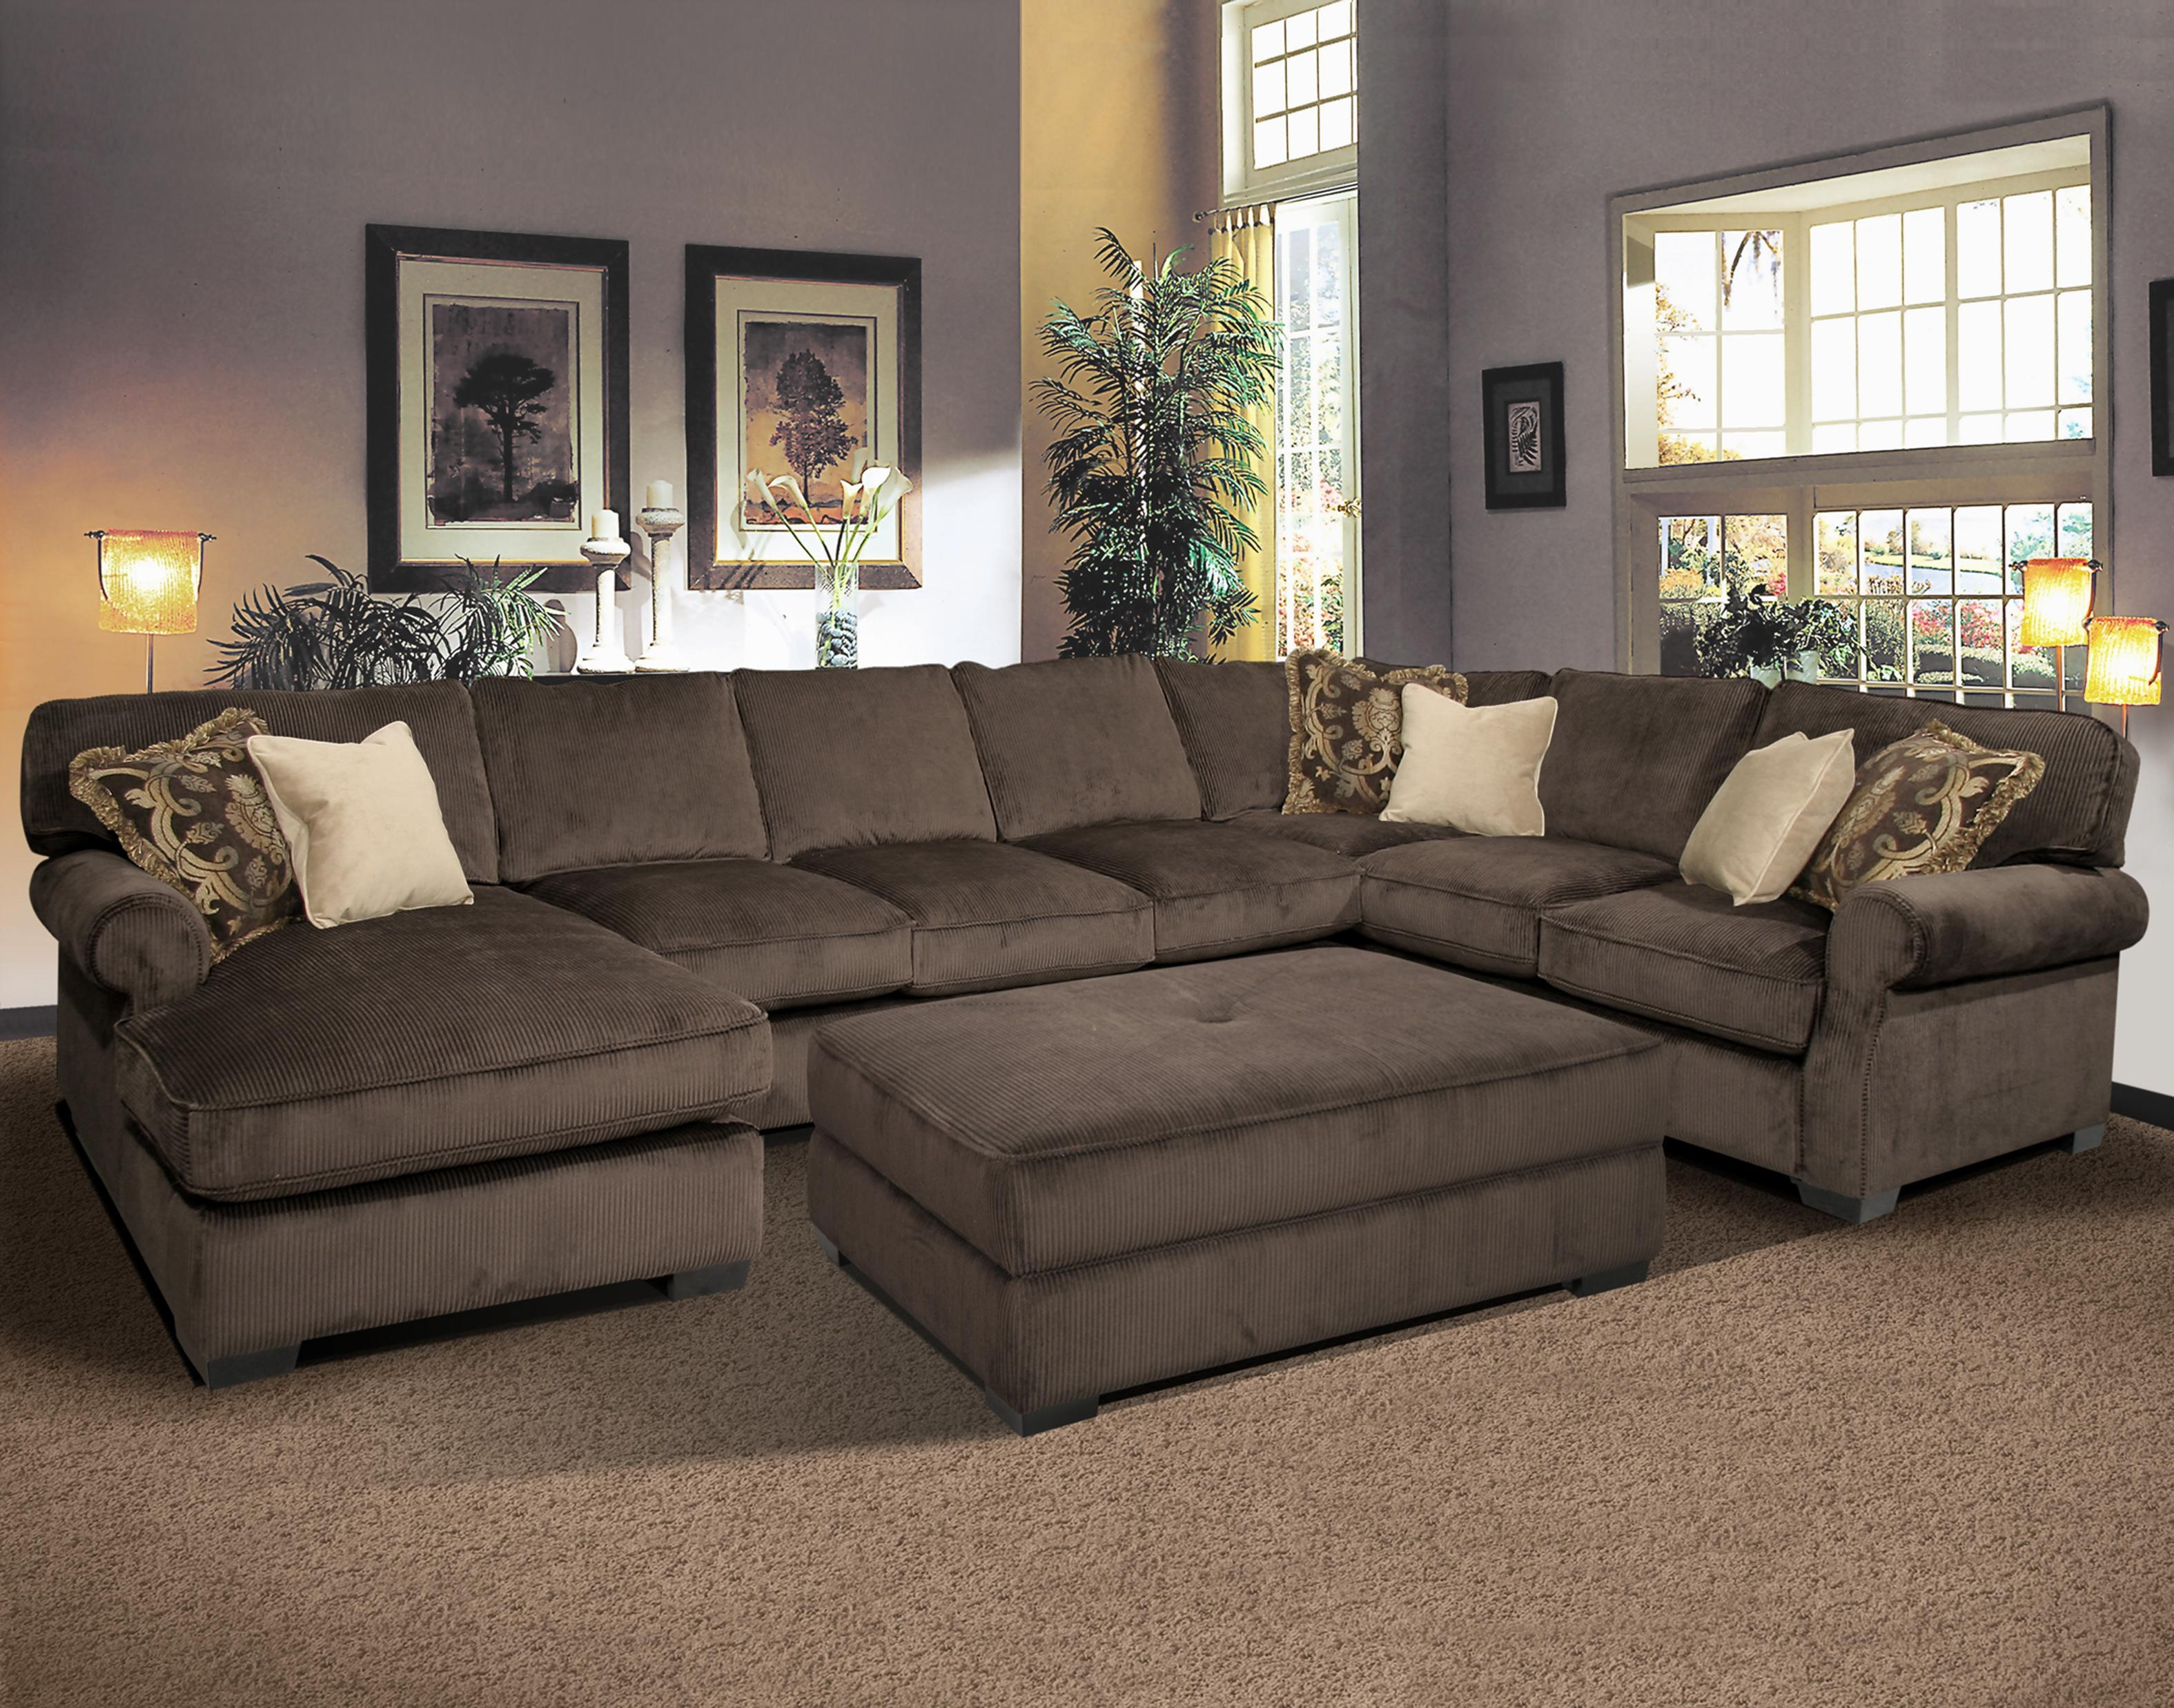 Awesome Comfy Sectional Sofas 26 For Sleeper Sectional Sofa For Pertaining To Comfy Sectional Sofa (Image 2 of 15)